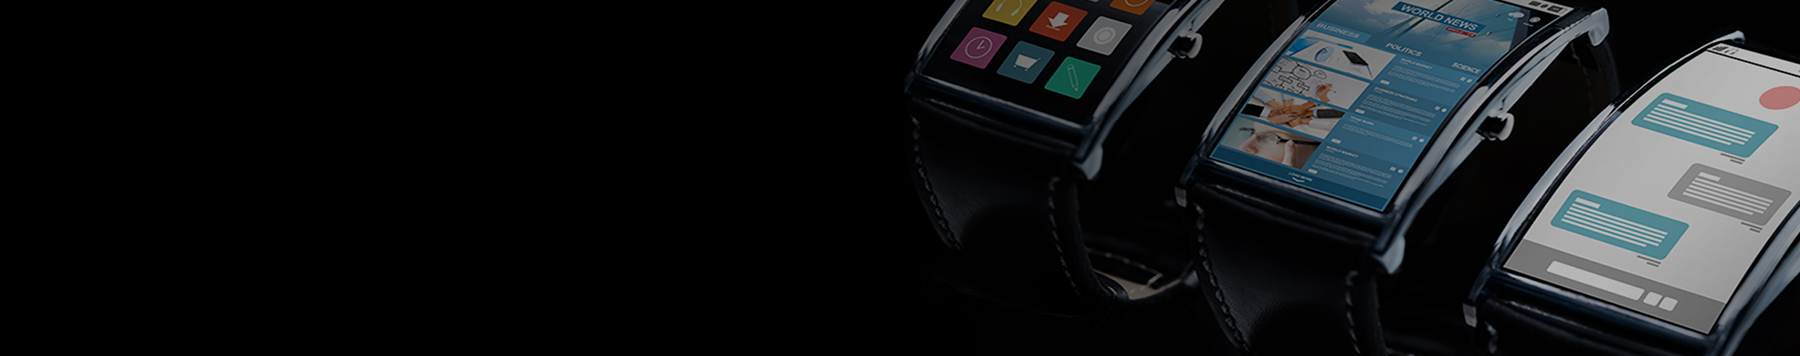 Adhesives for Wearable Devices